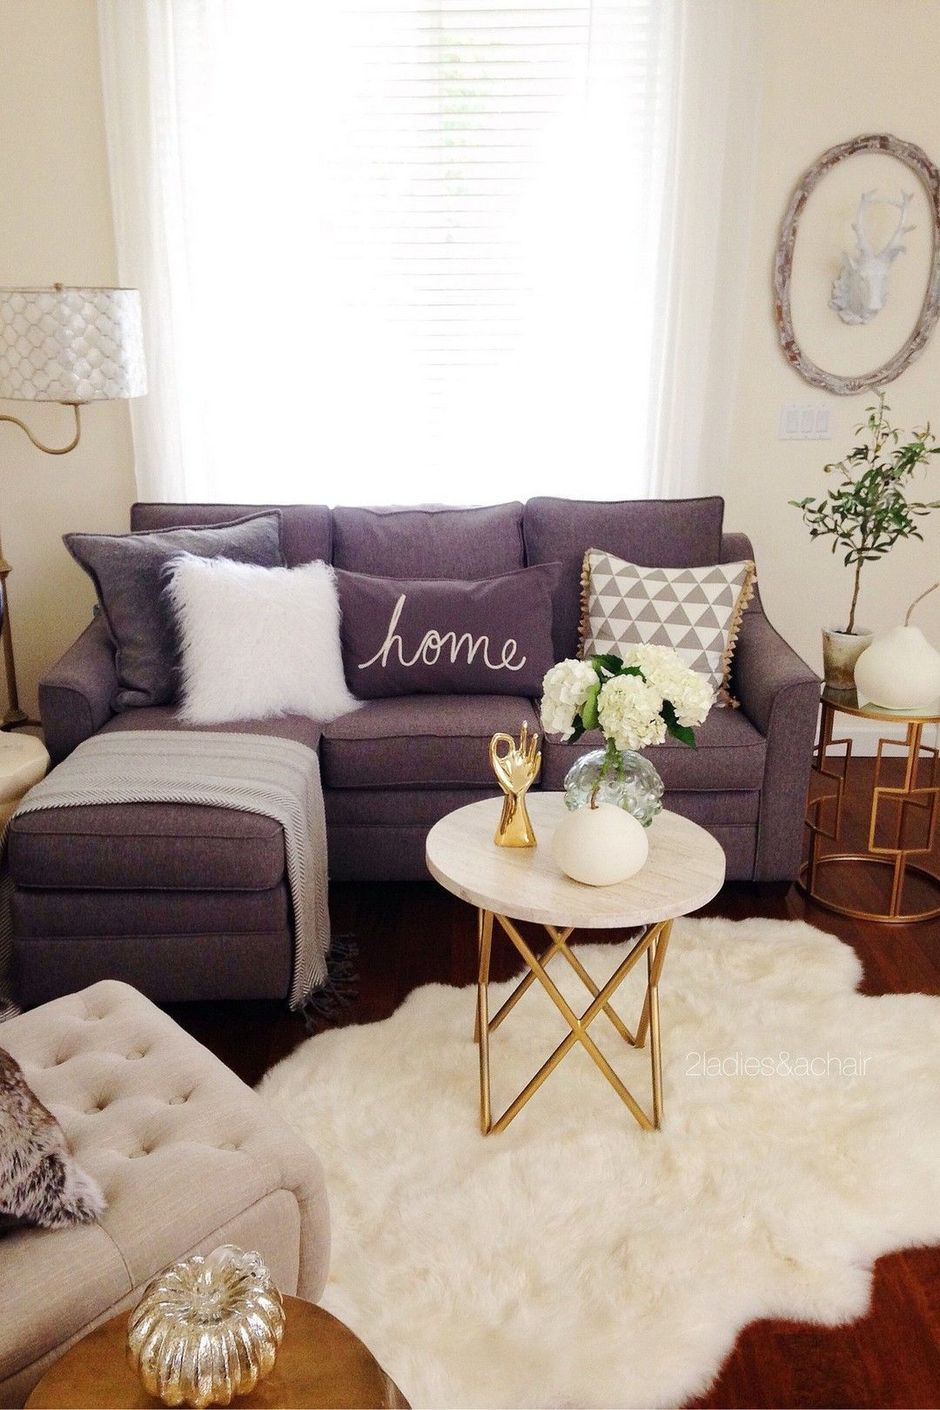 90 Suggestion How To Make Simple Apartment Decorations On Budget